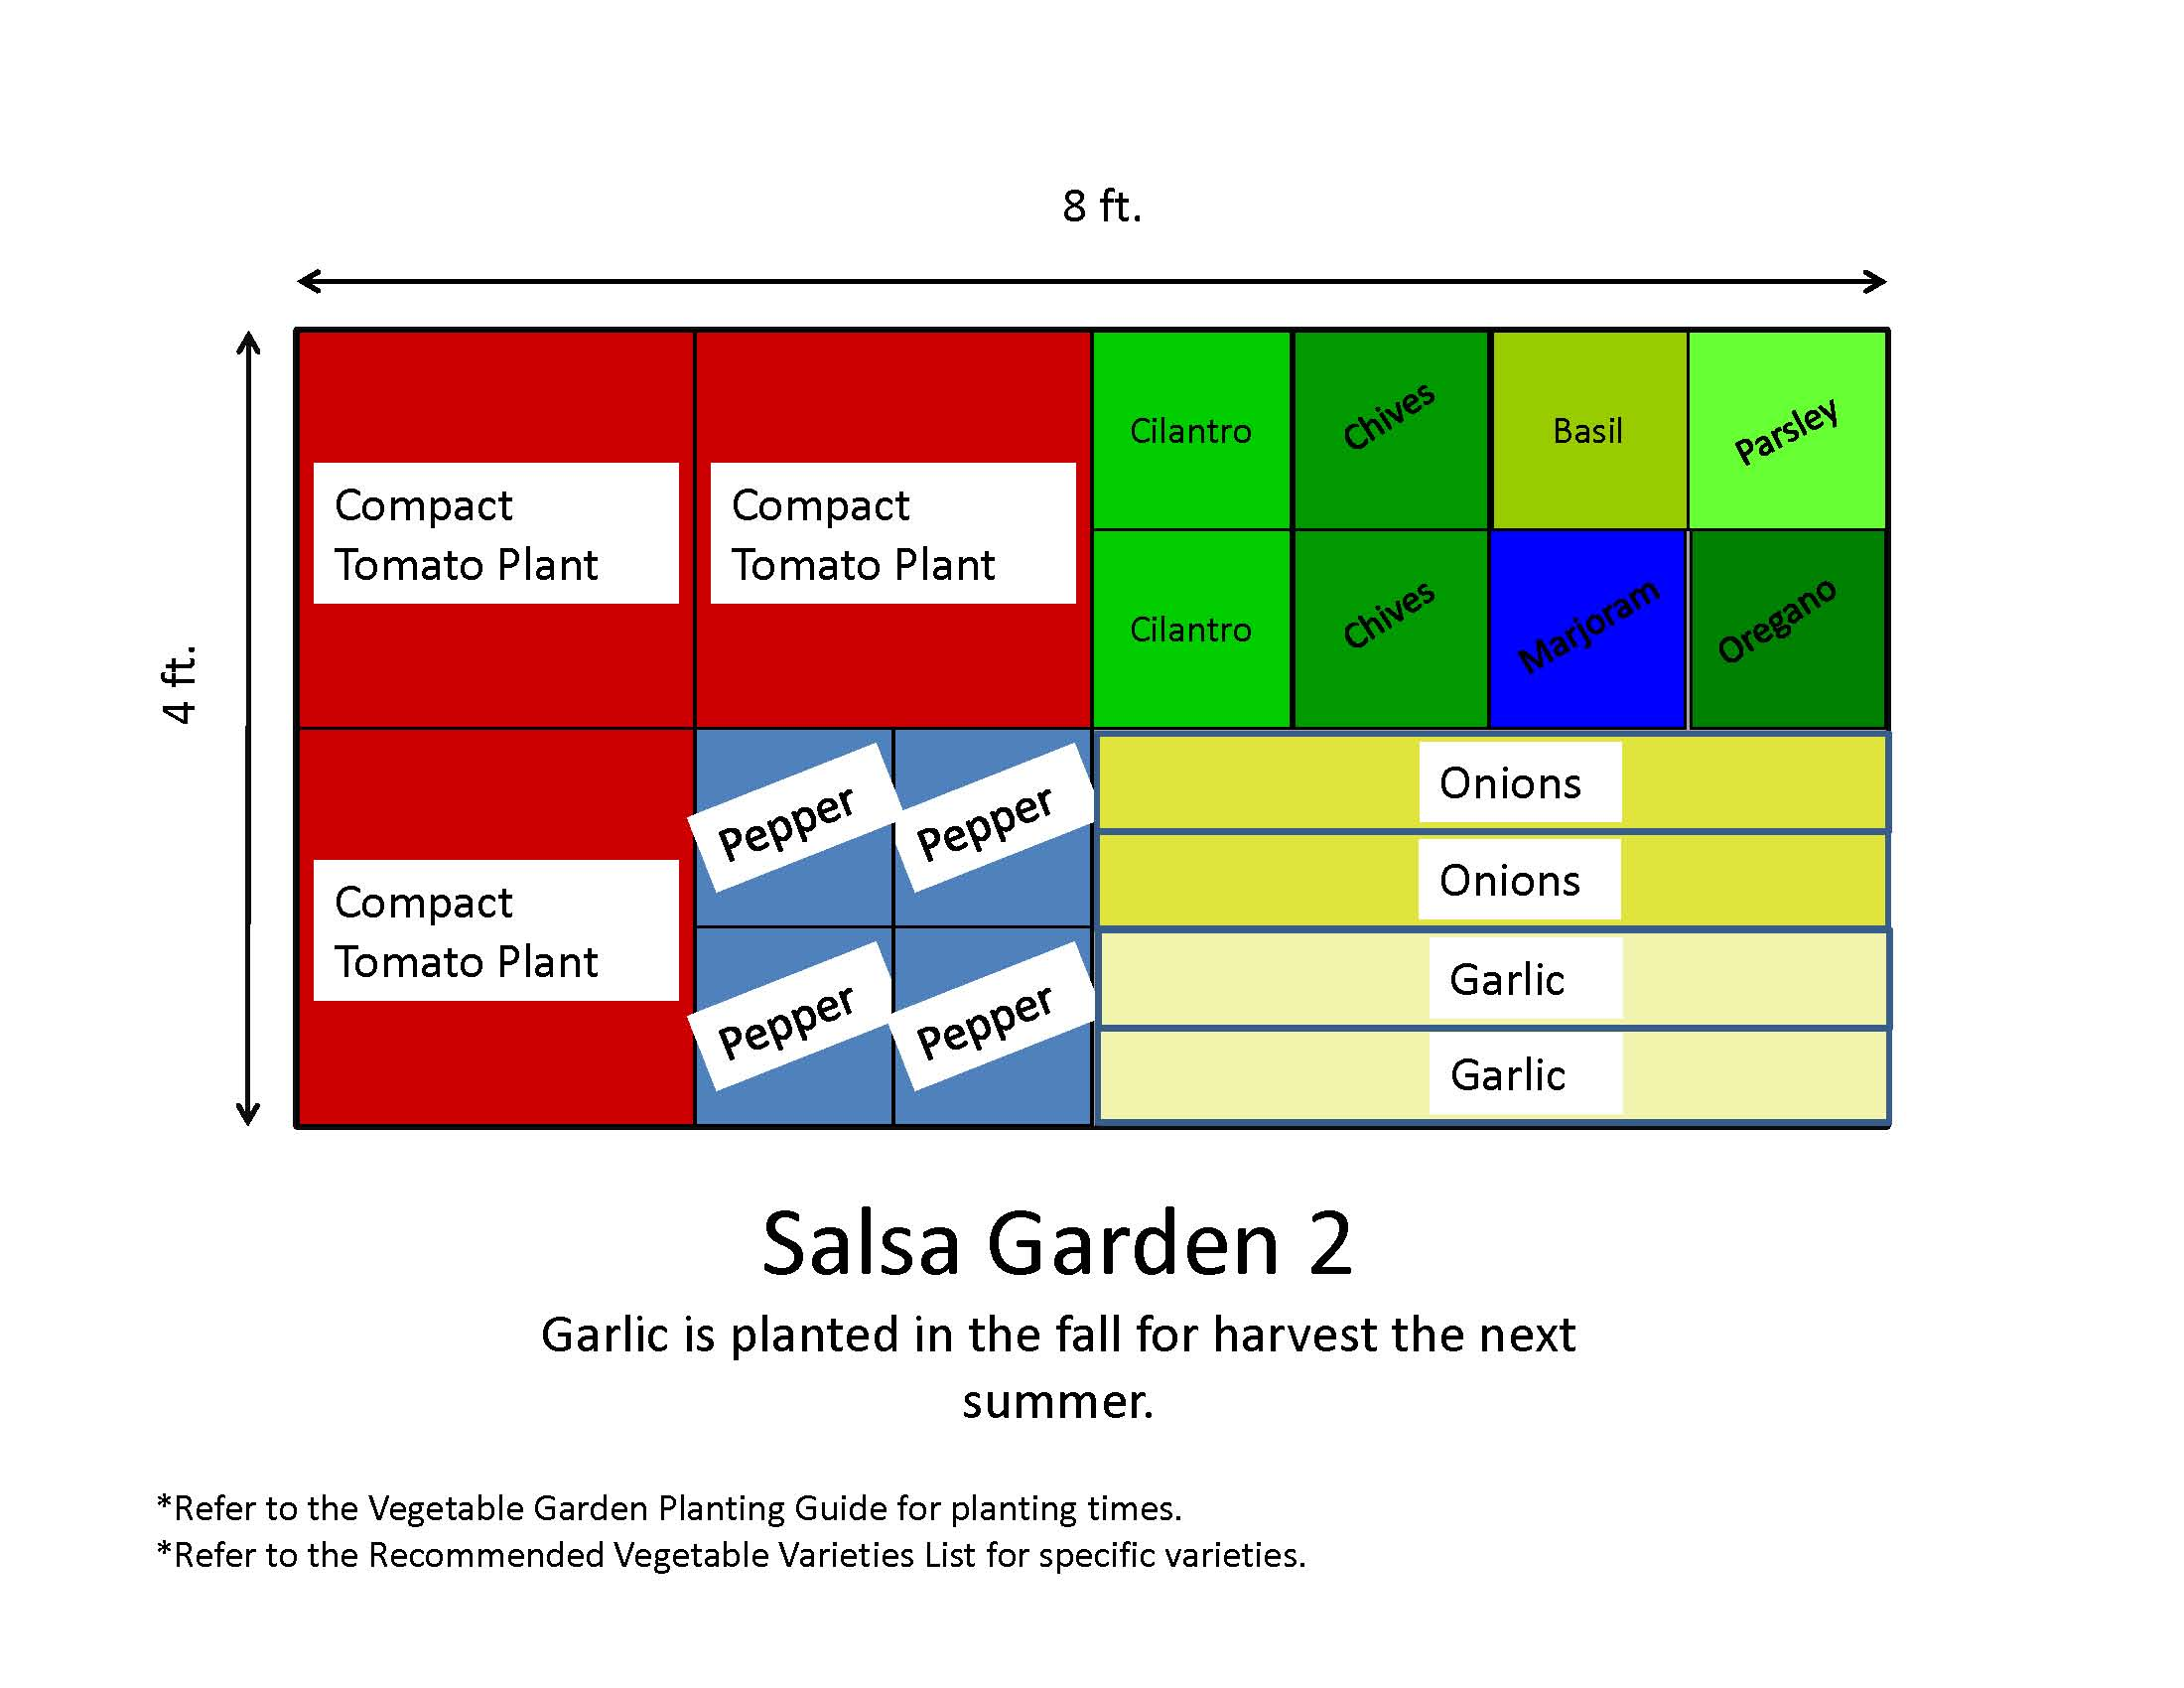 Garden Templates | The Demo Garden Blog on vegetable garden layout zone 4, garden design canada, garden design roses, garden plan zone 4, garden design home, garden design atlanta, garden design uk, garden design wall, butterfly garden zone 4, herb garden zone 4, fall garden zone 4, shade garden zone 4,